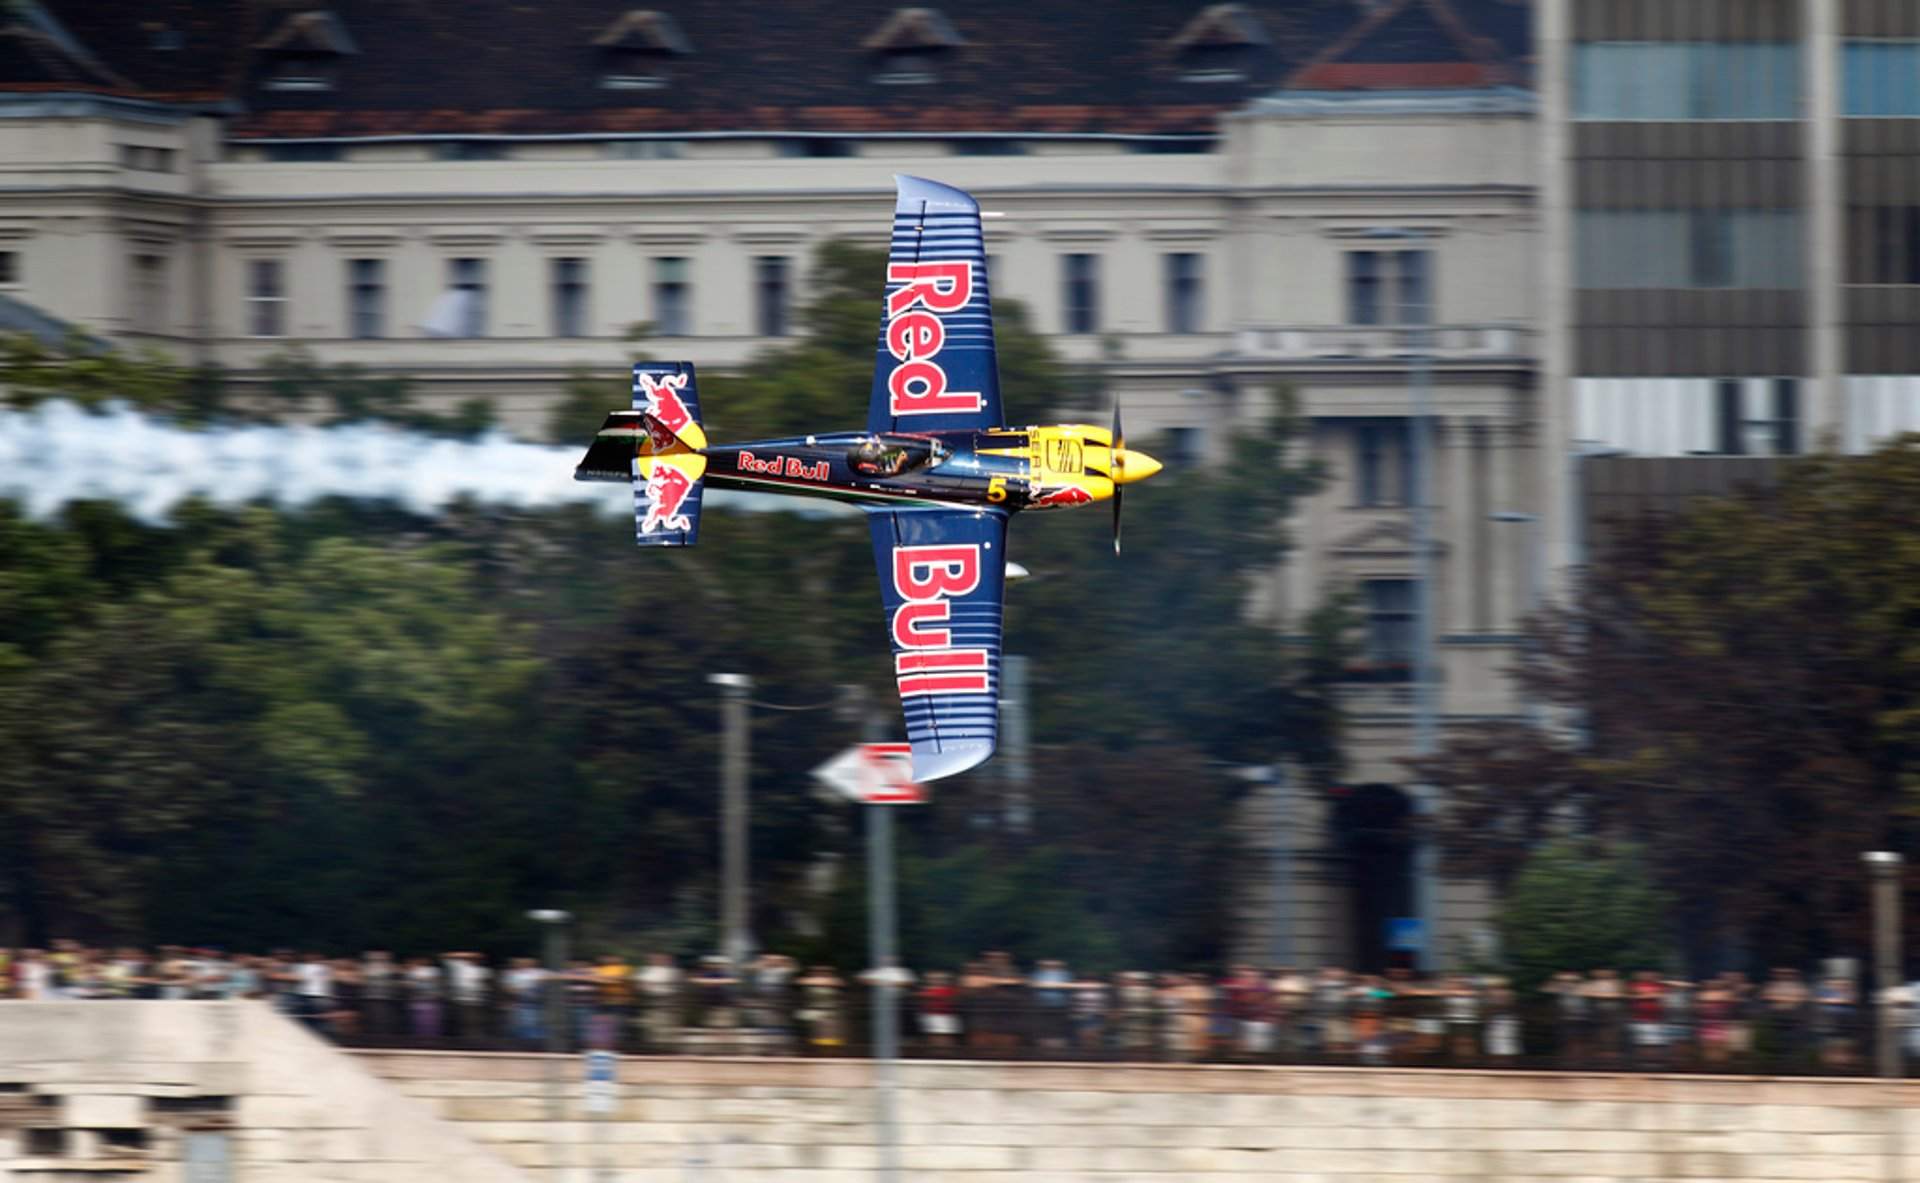 The Red Bull Air Race in Hungary - Best Season 2020